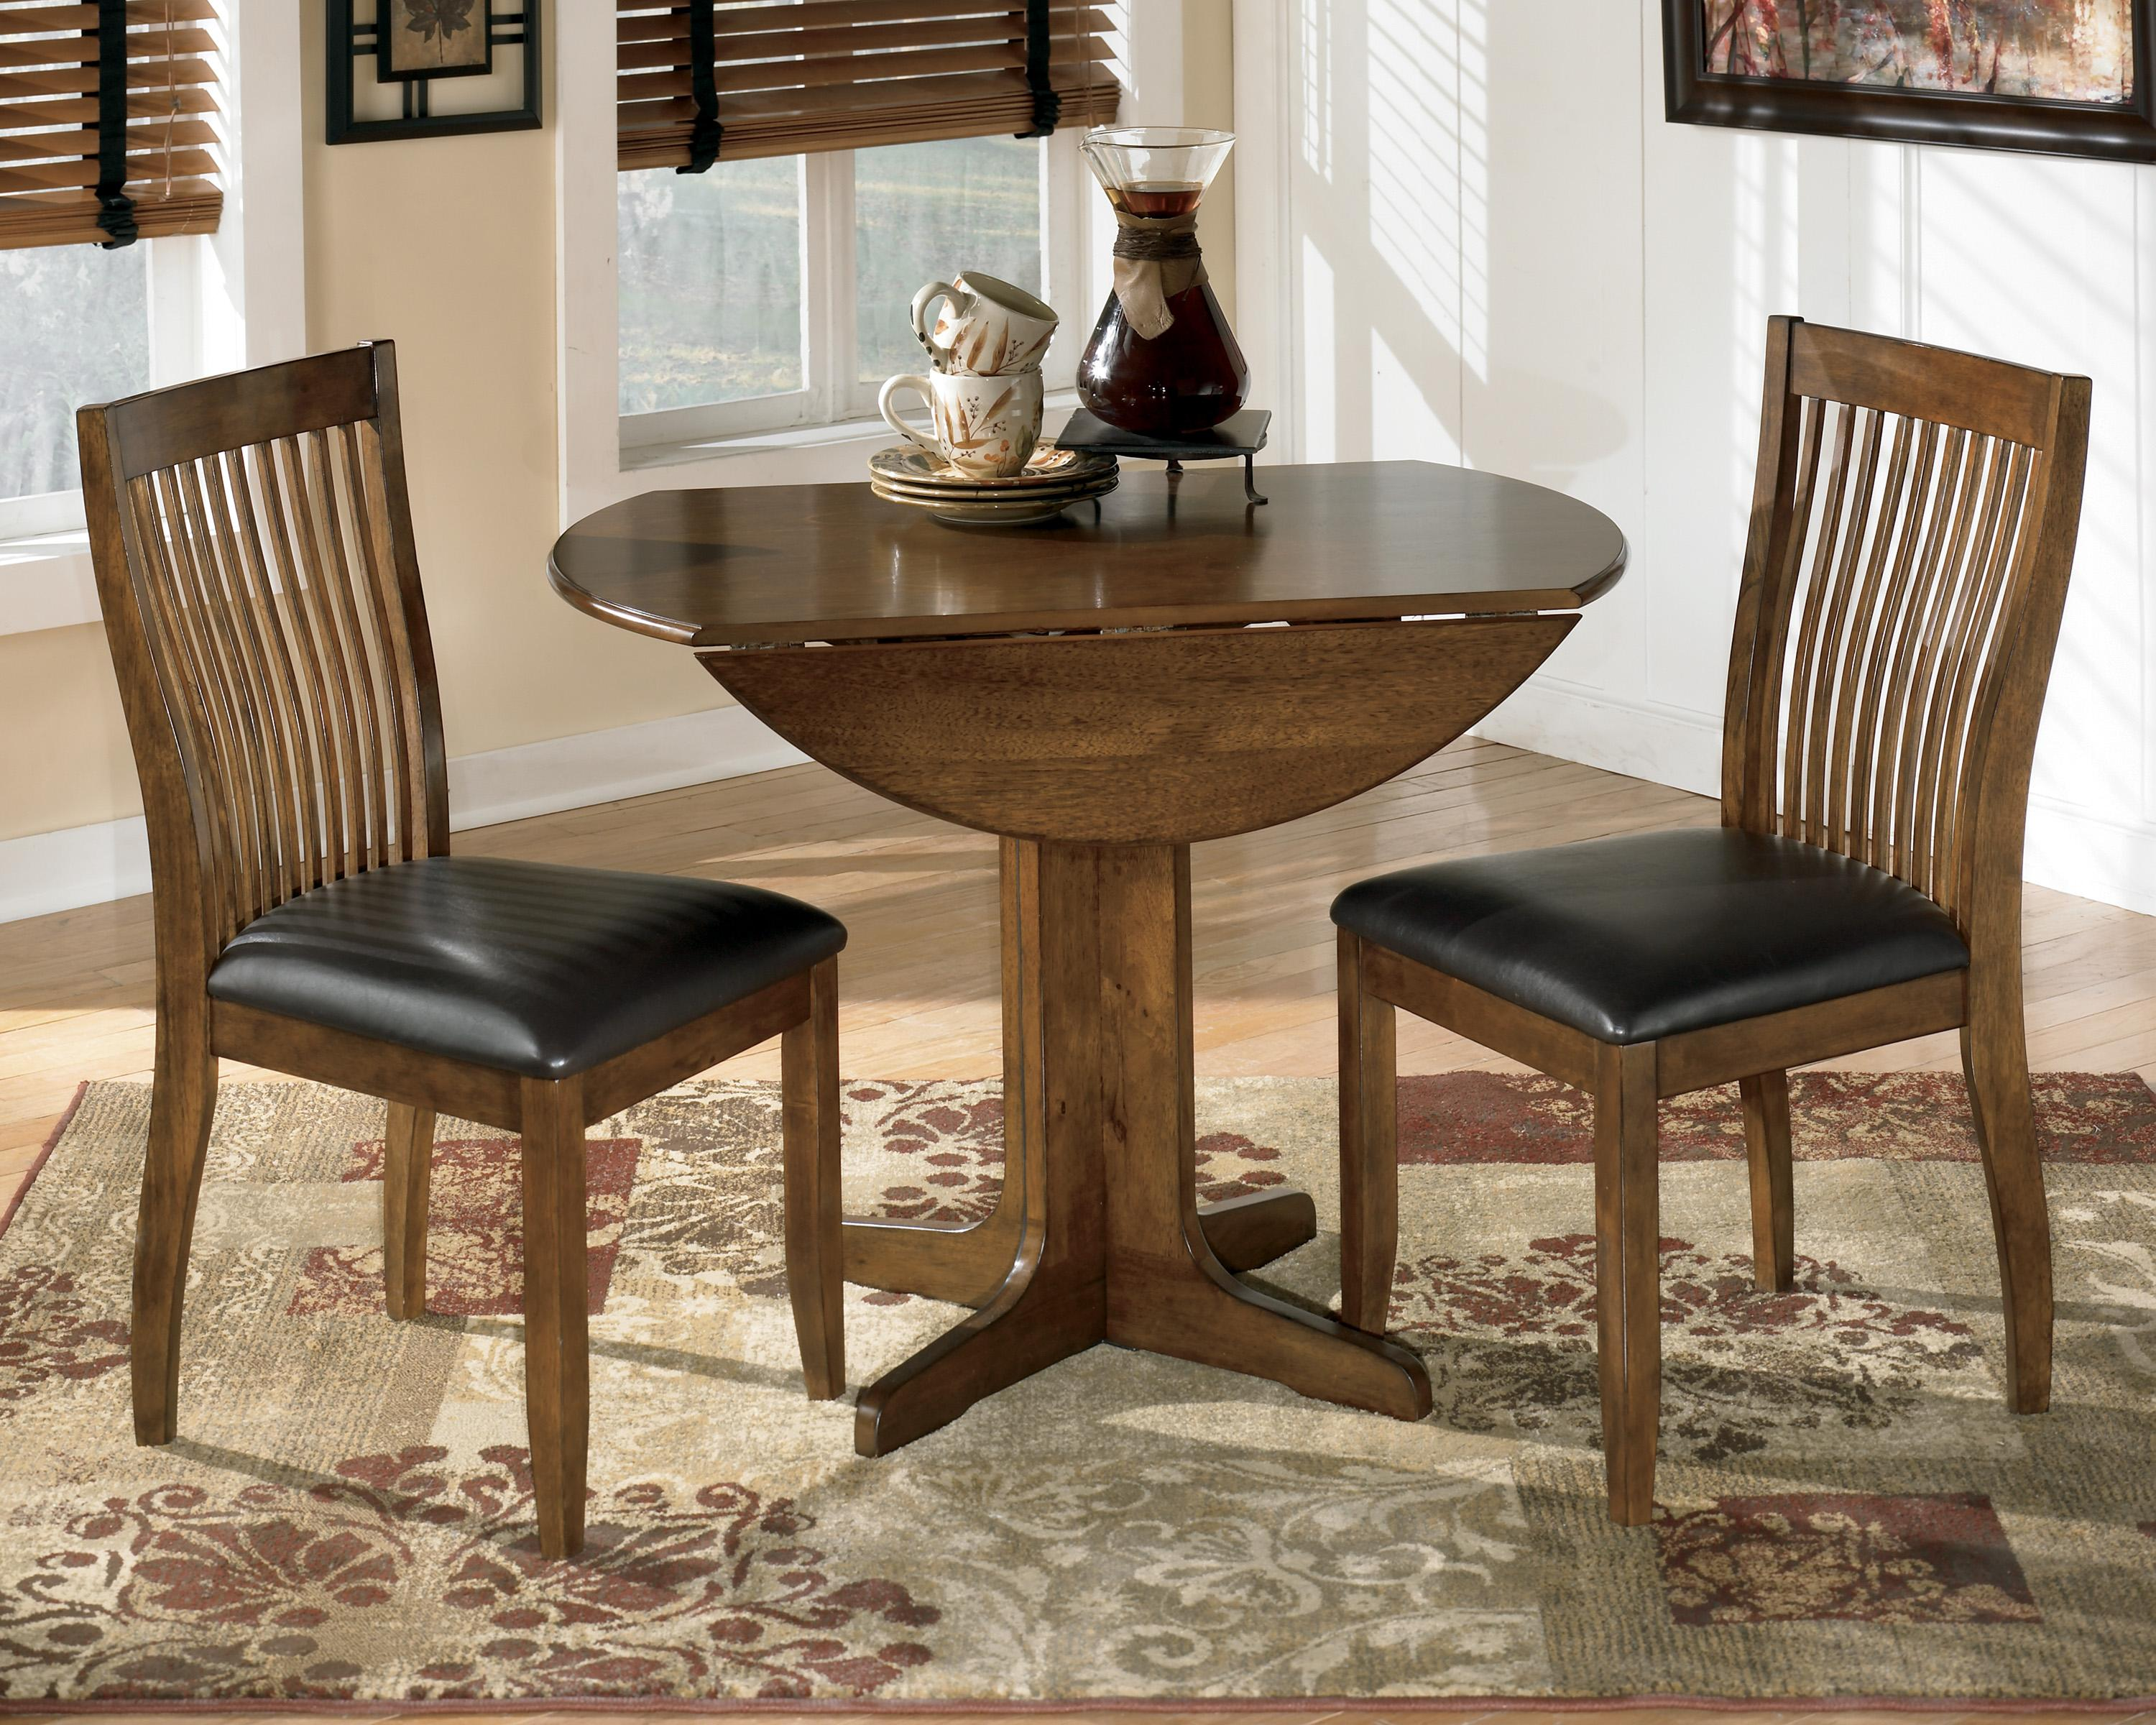 Drop Leaf Table With Chairs Signature Design By Ashley Stuman Round Drop Leaf Table